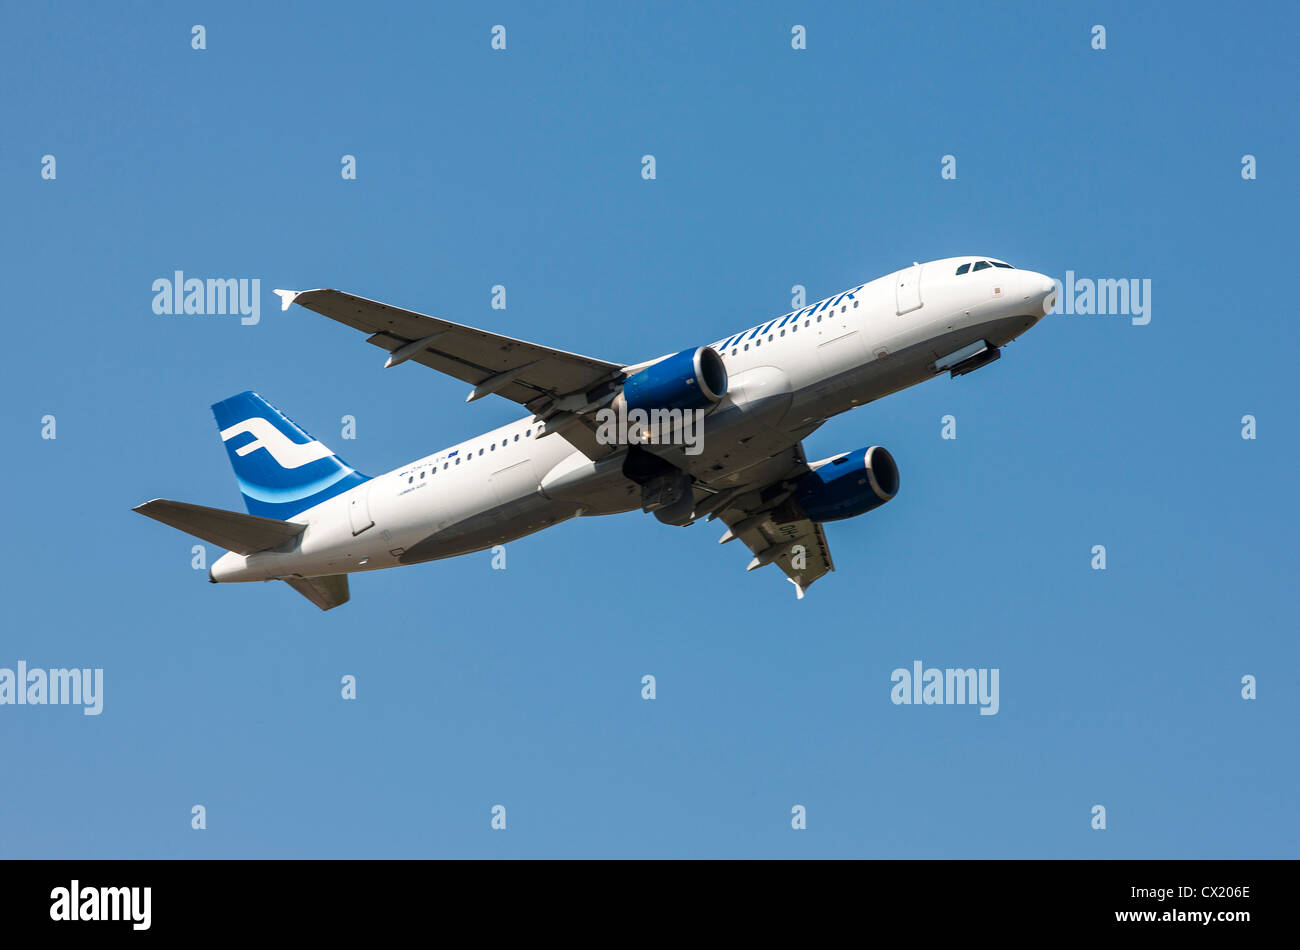 Passenger jet plane taking off form Düsseldorf International Airport. Finnair, Airbus A320, - Stock Image